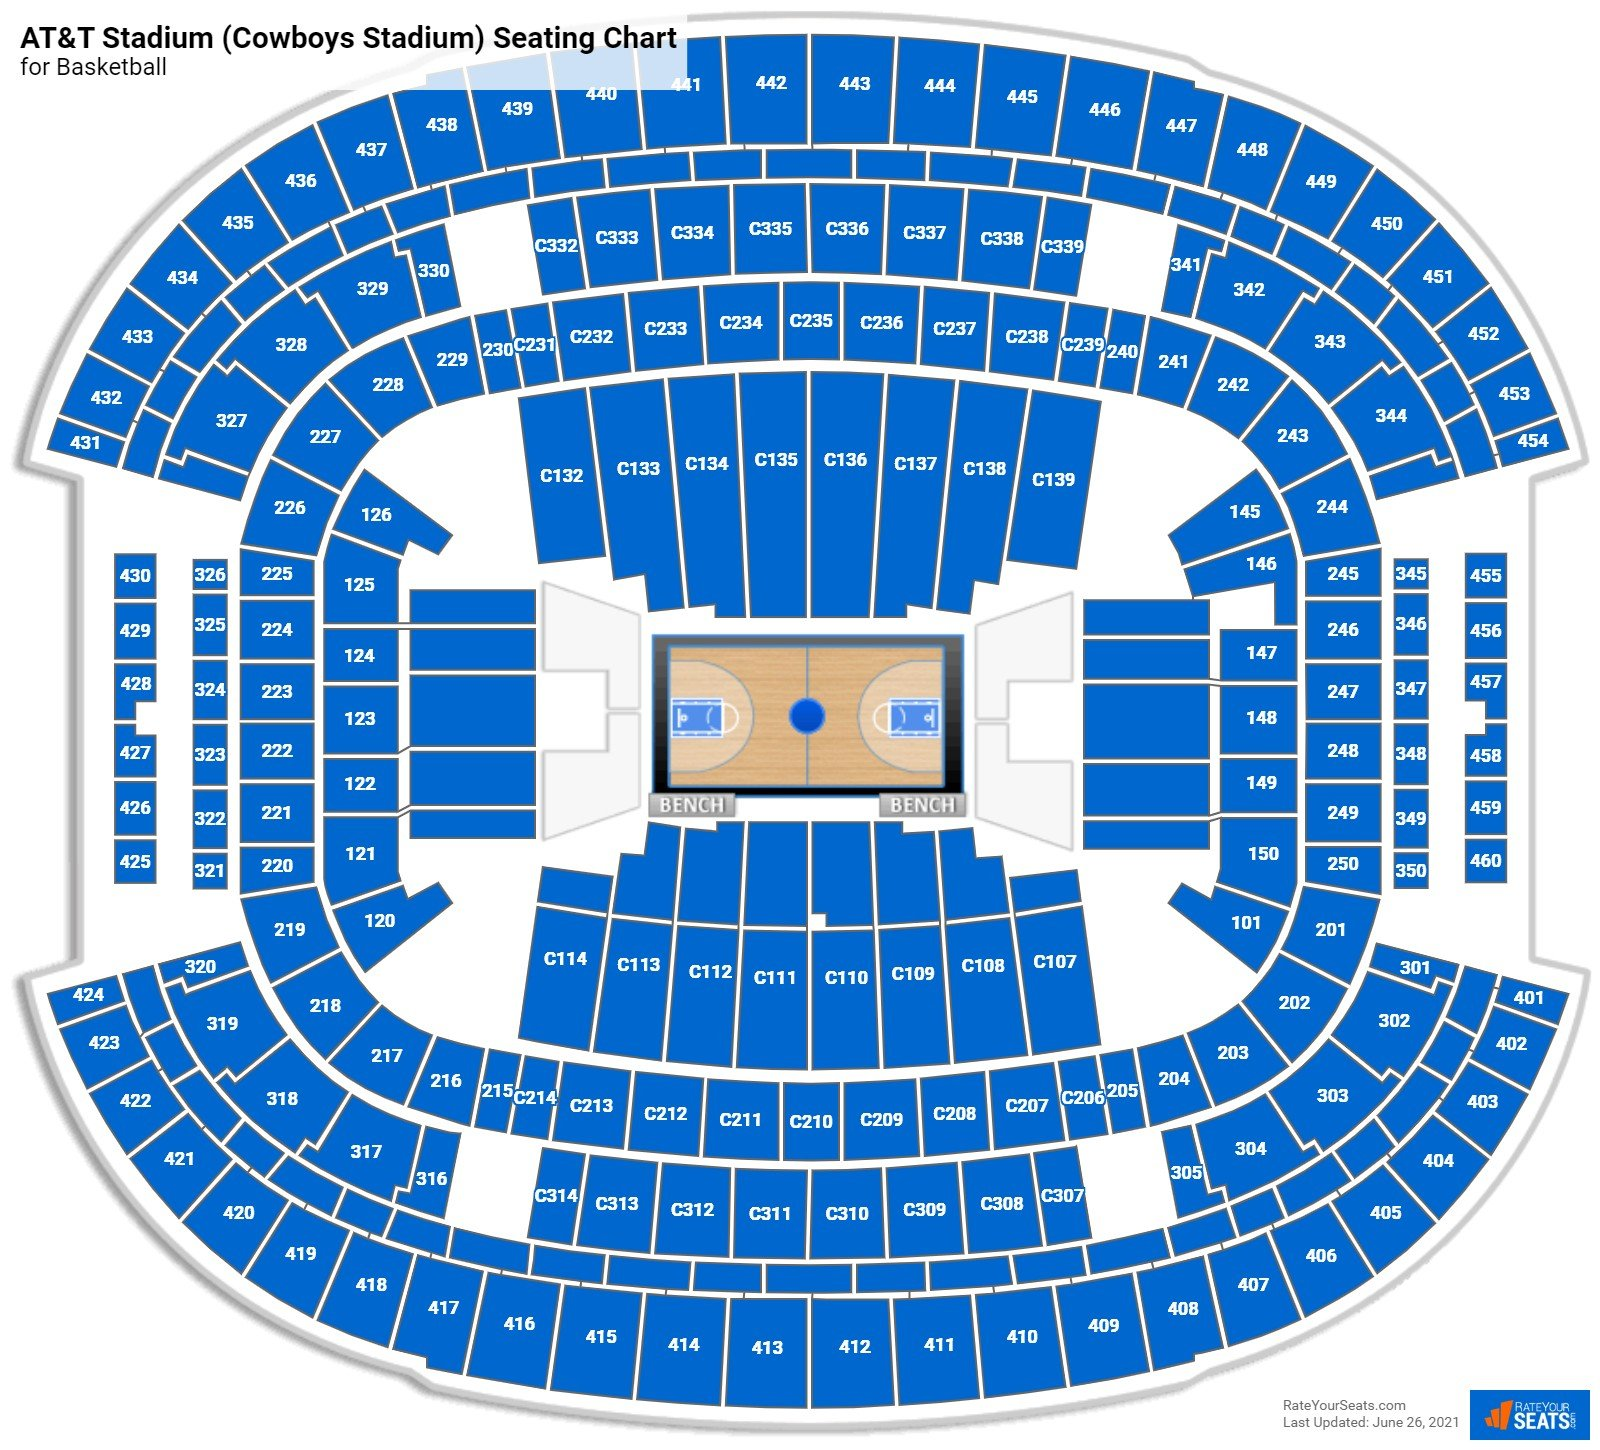 AT&T Stadium (Cowboys Stadium) Seating Chart for Basketball